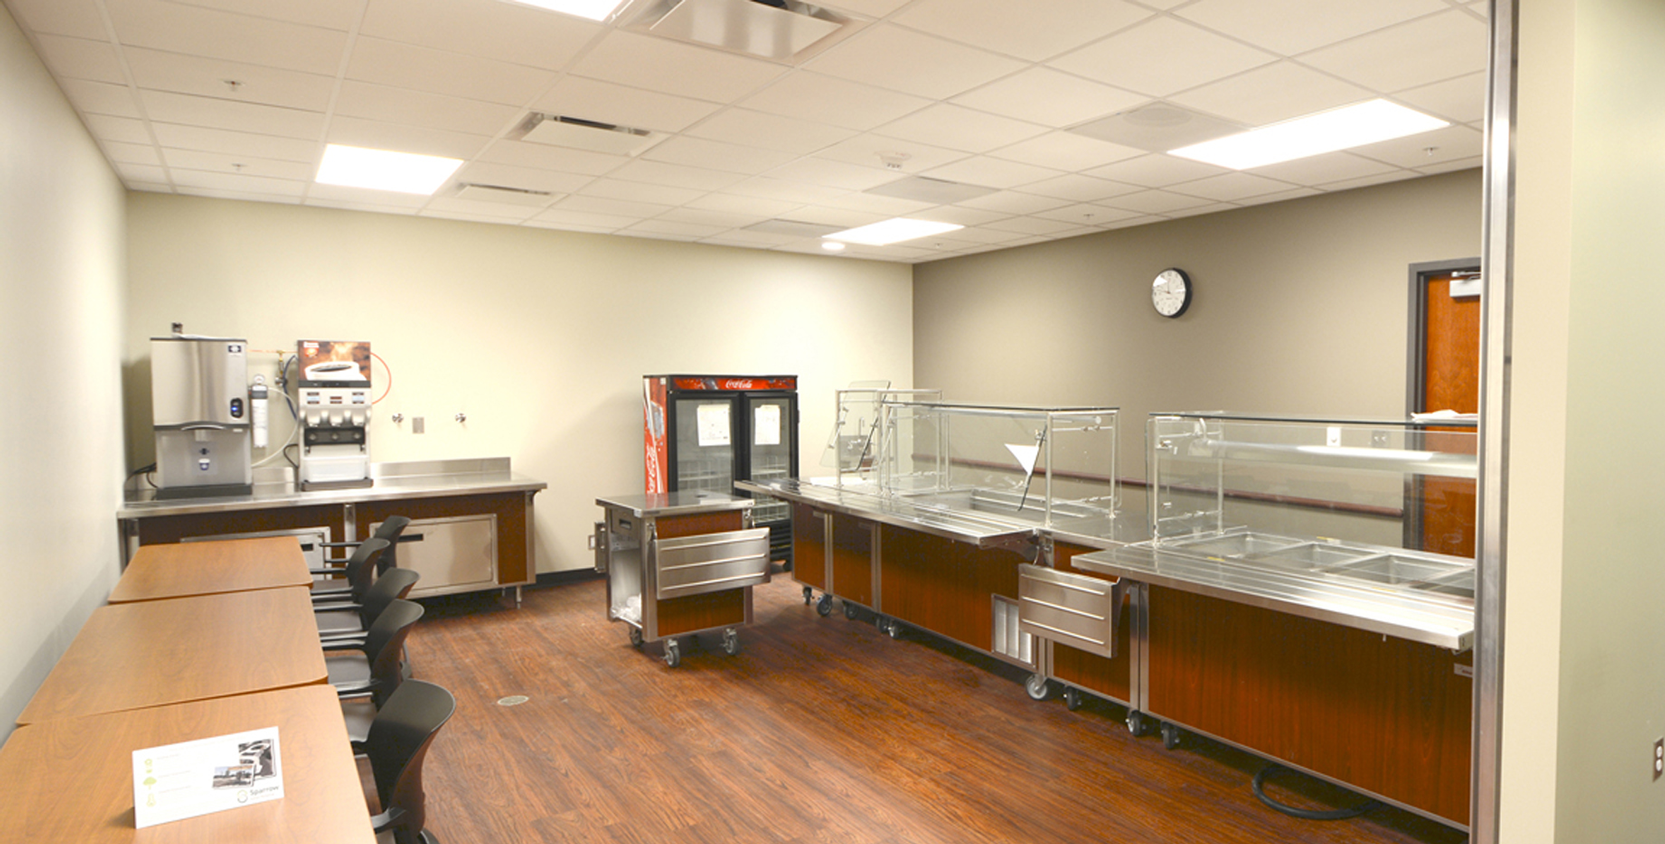 Sparrow-Ionia-Replacement-Hospital-Dining-1665x845